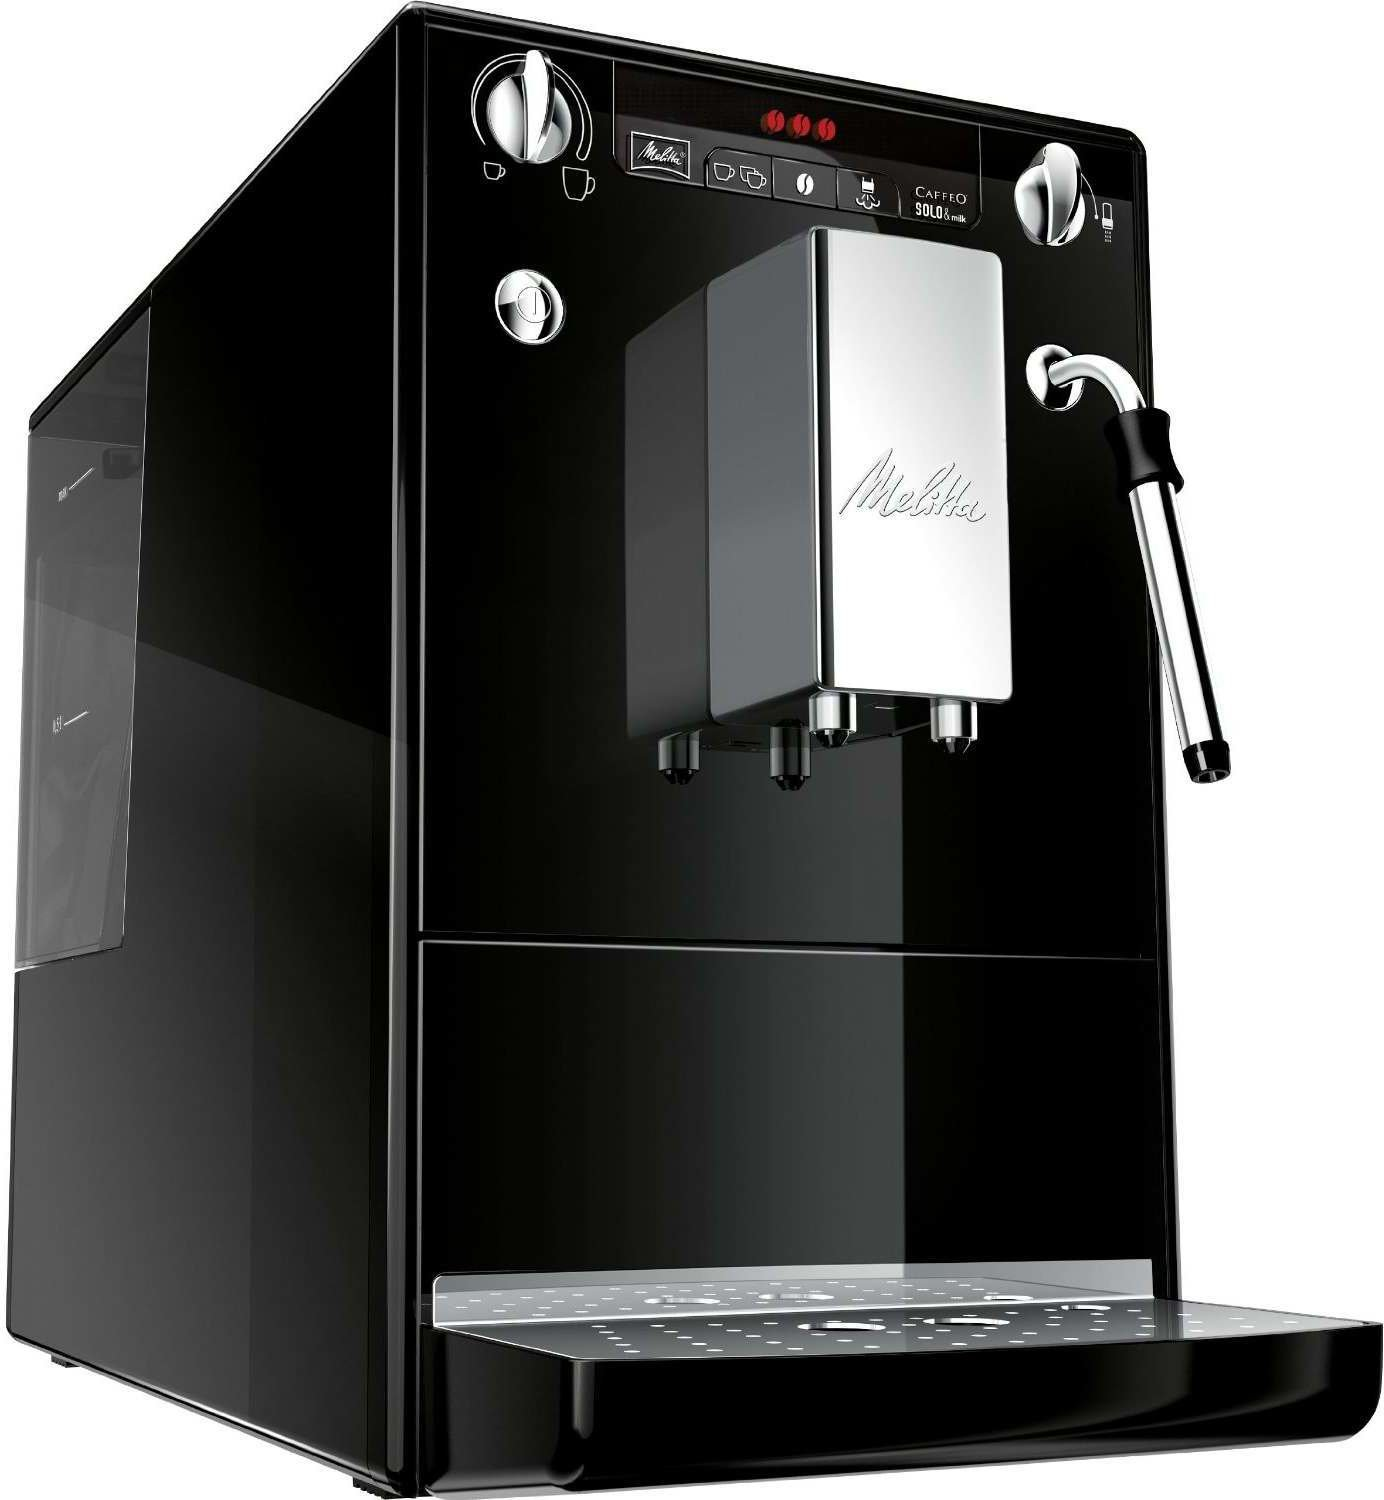 melitta e 953 101 caffeo solo milk kaffeevollautomat im. Black Bedroom Furniture Sets. Home Design Ideas